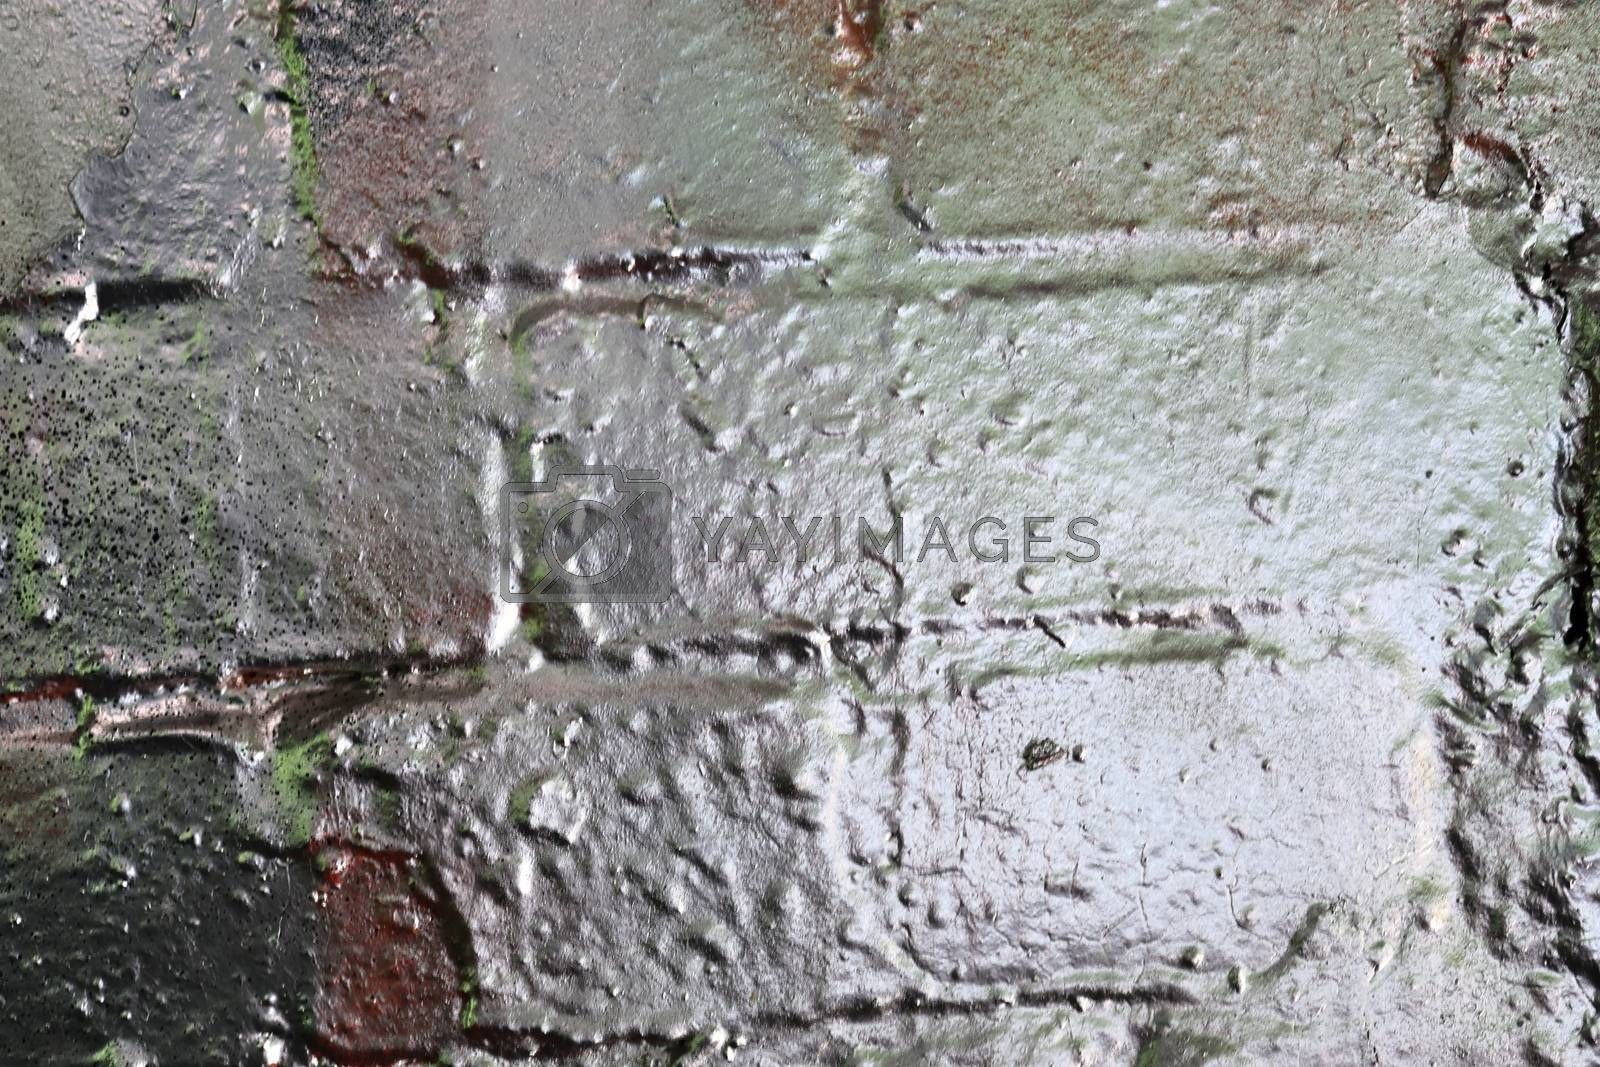 Texture of colorful graffiti paint on conrete and brick walls in by MP_foto71